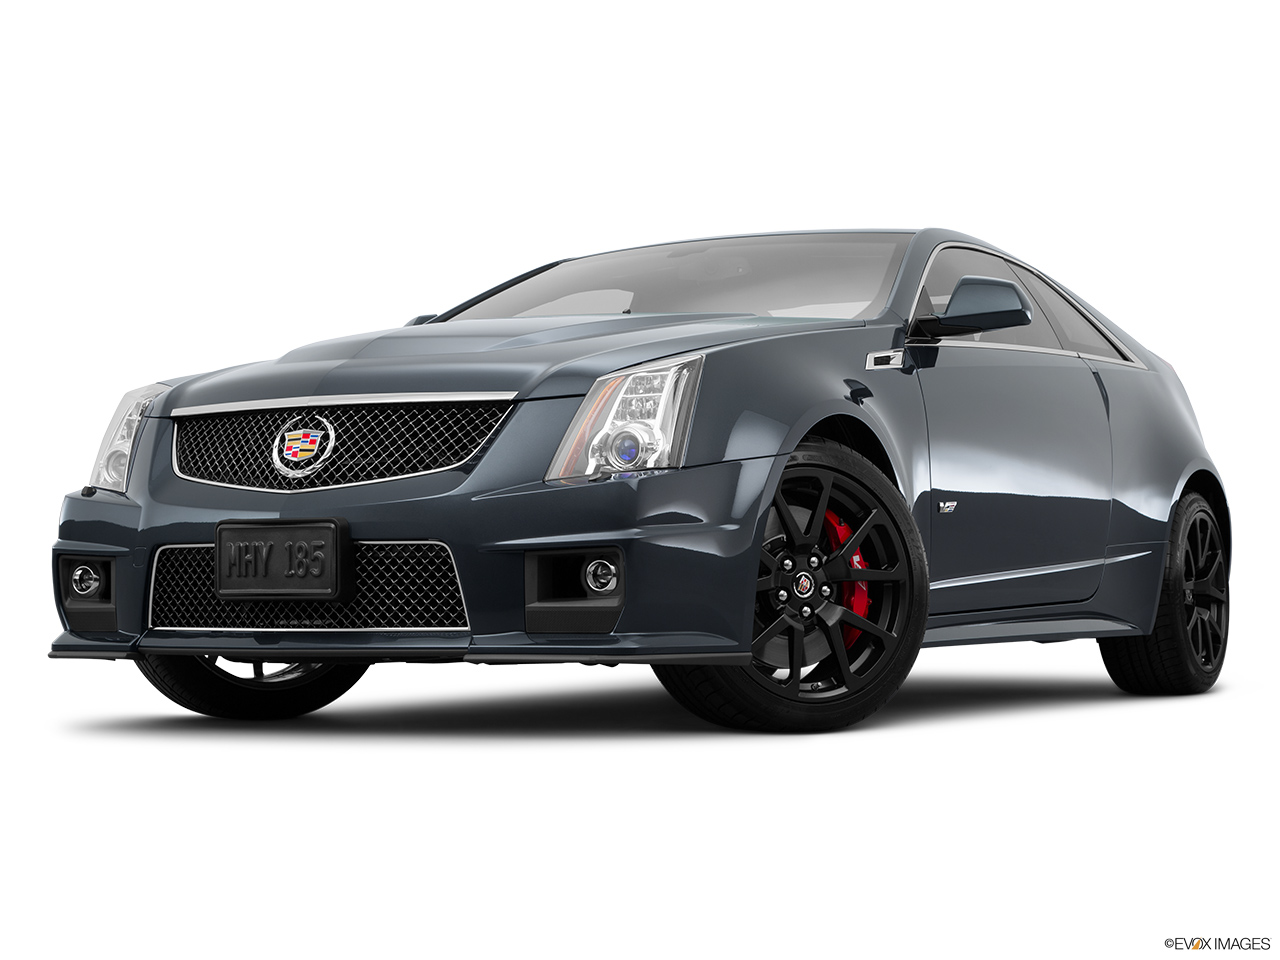 What Does Cts Stand For >> 2015 Cadillac Cts V Coupe Coupe Front Angle View 2015 Cadillac